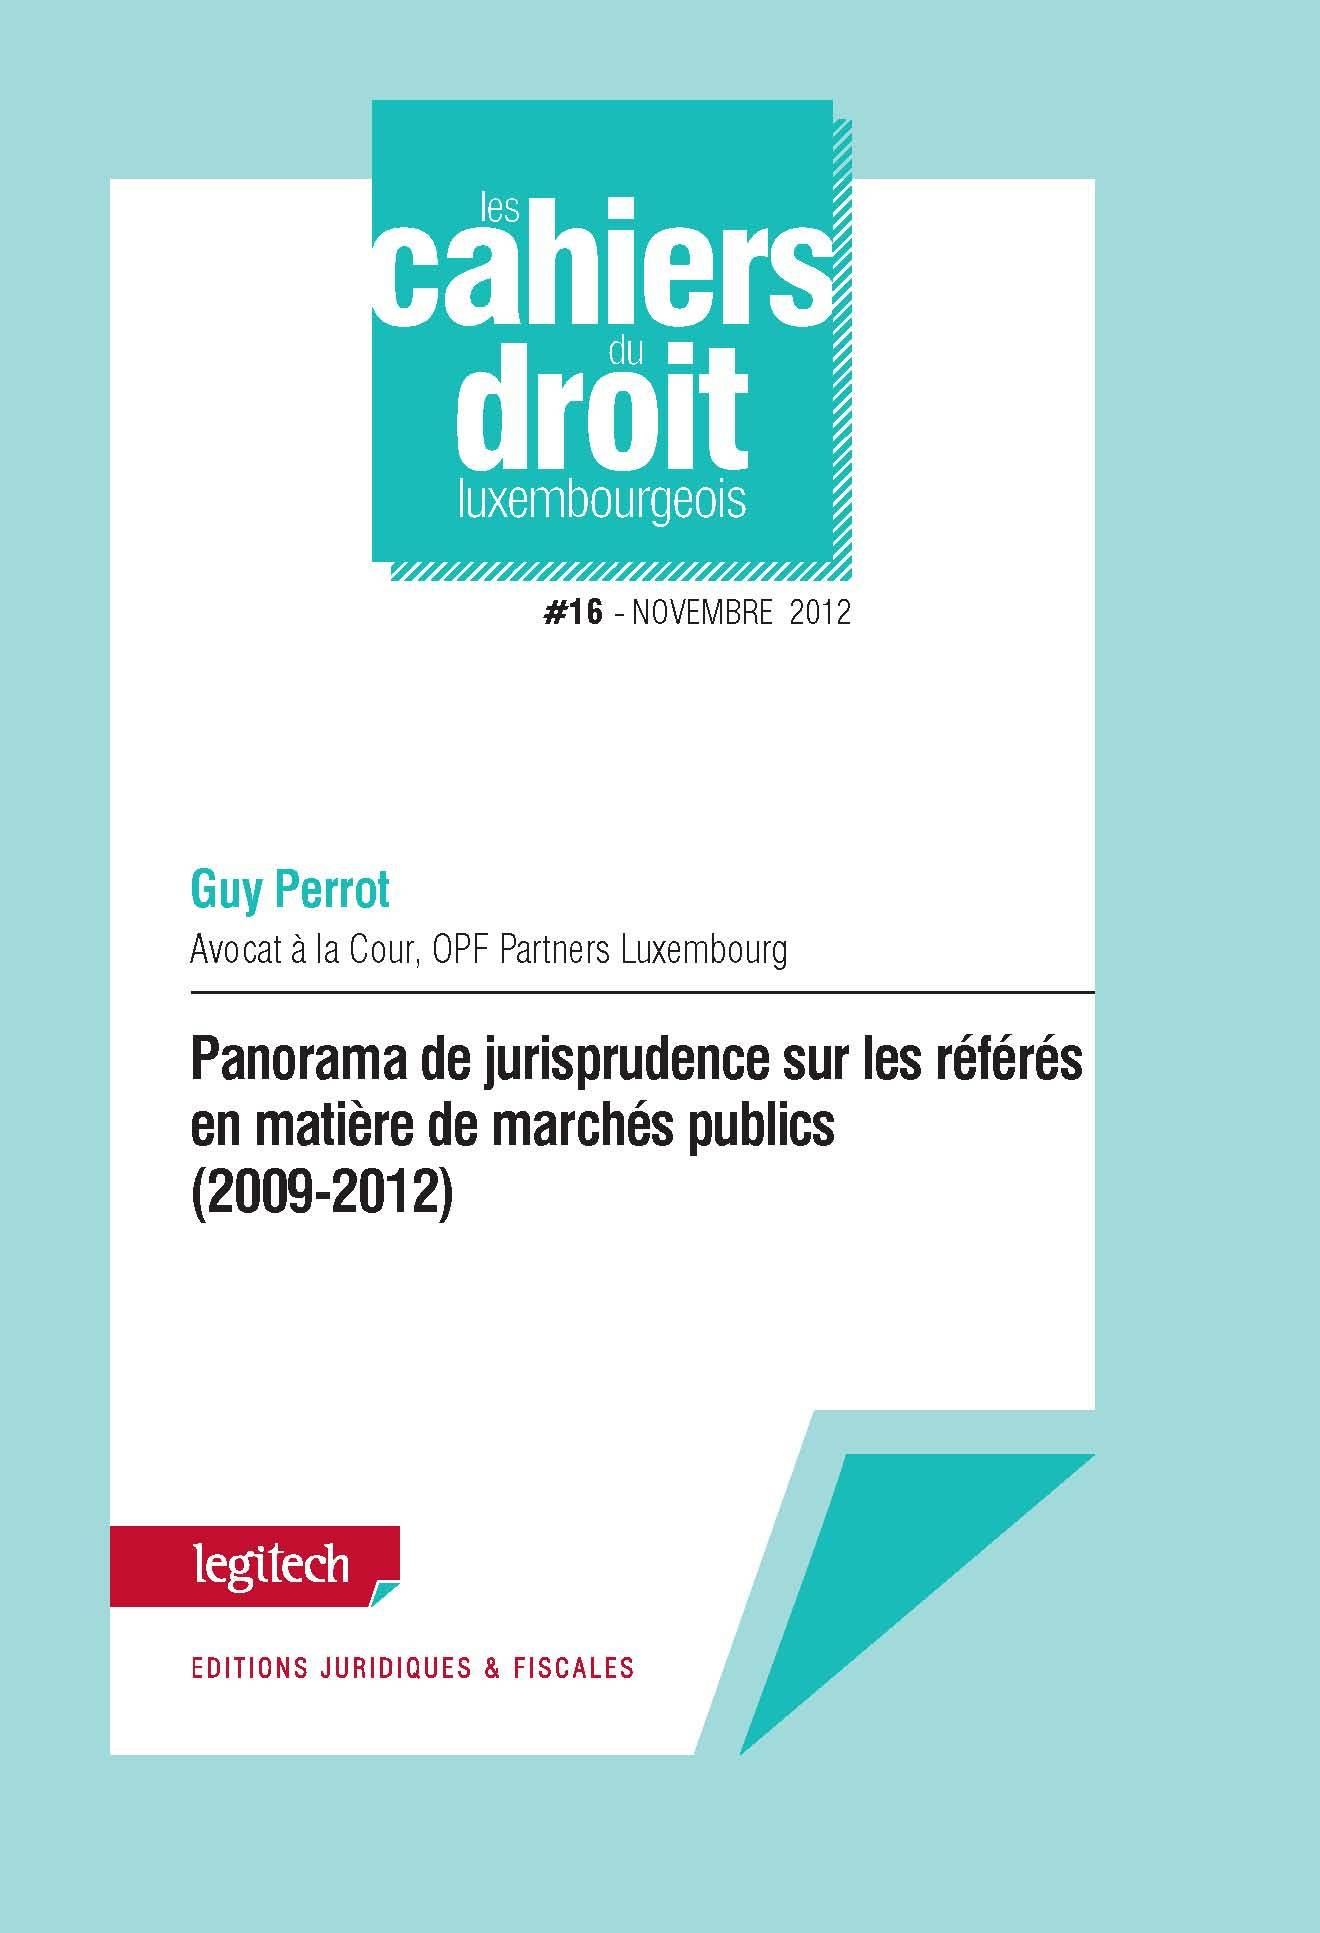 CAHIER DU DROIT LUXEMBOURGEOIS N 16